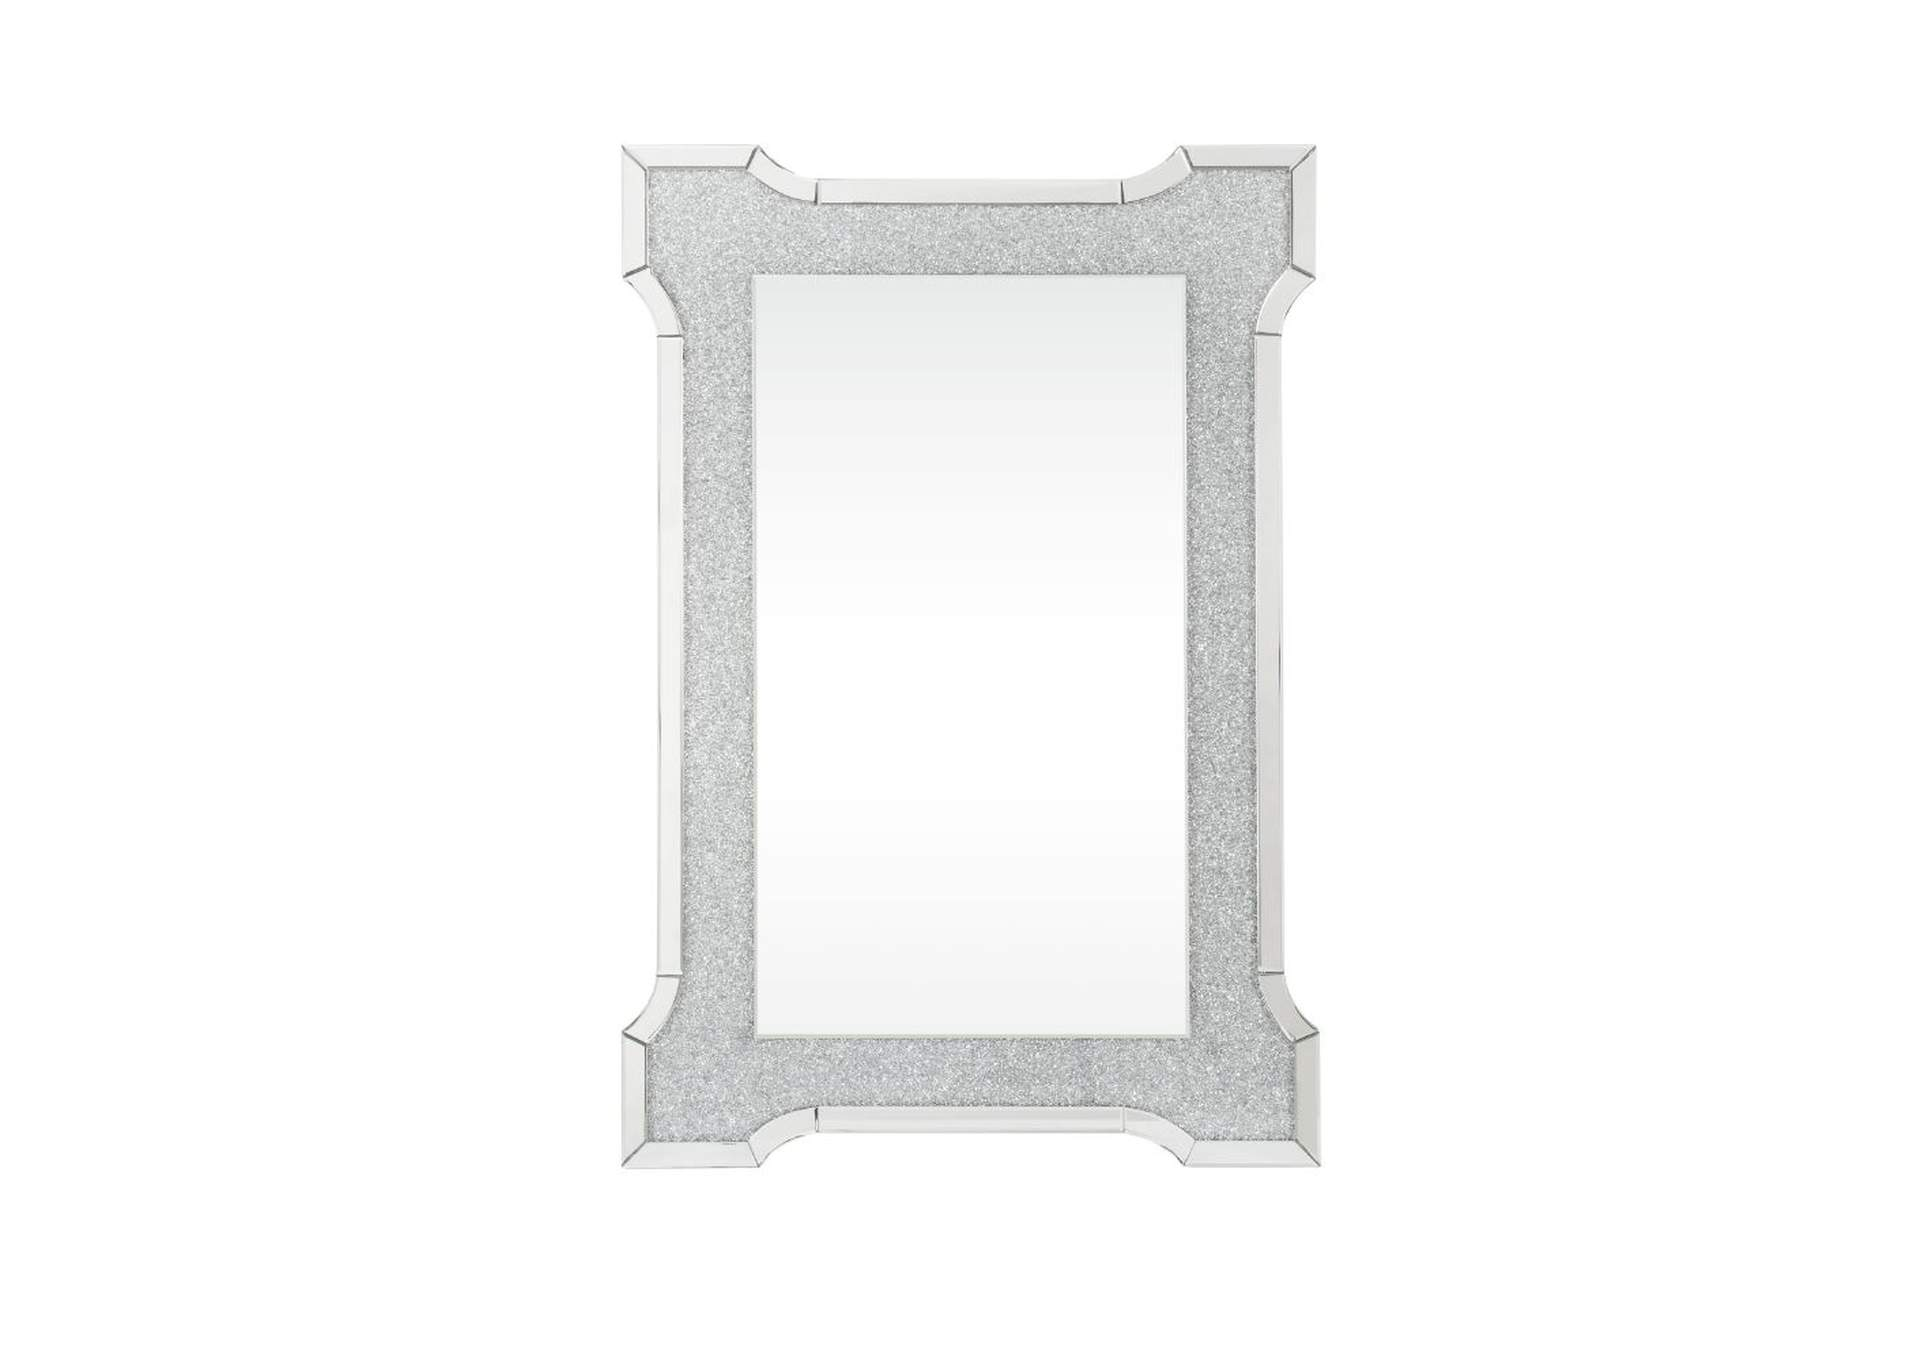 Nowles Mirrored & Faux Stones Wall Decor,Acme